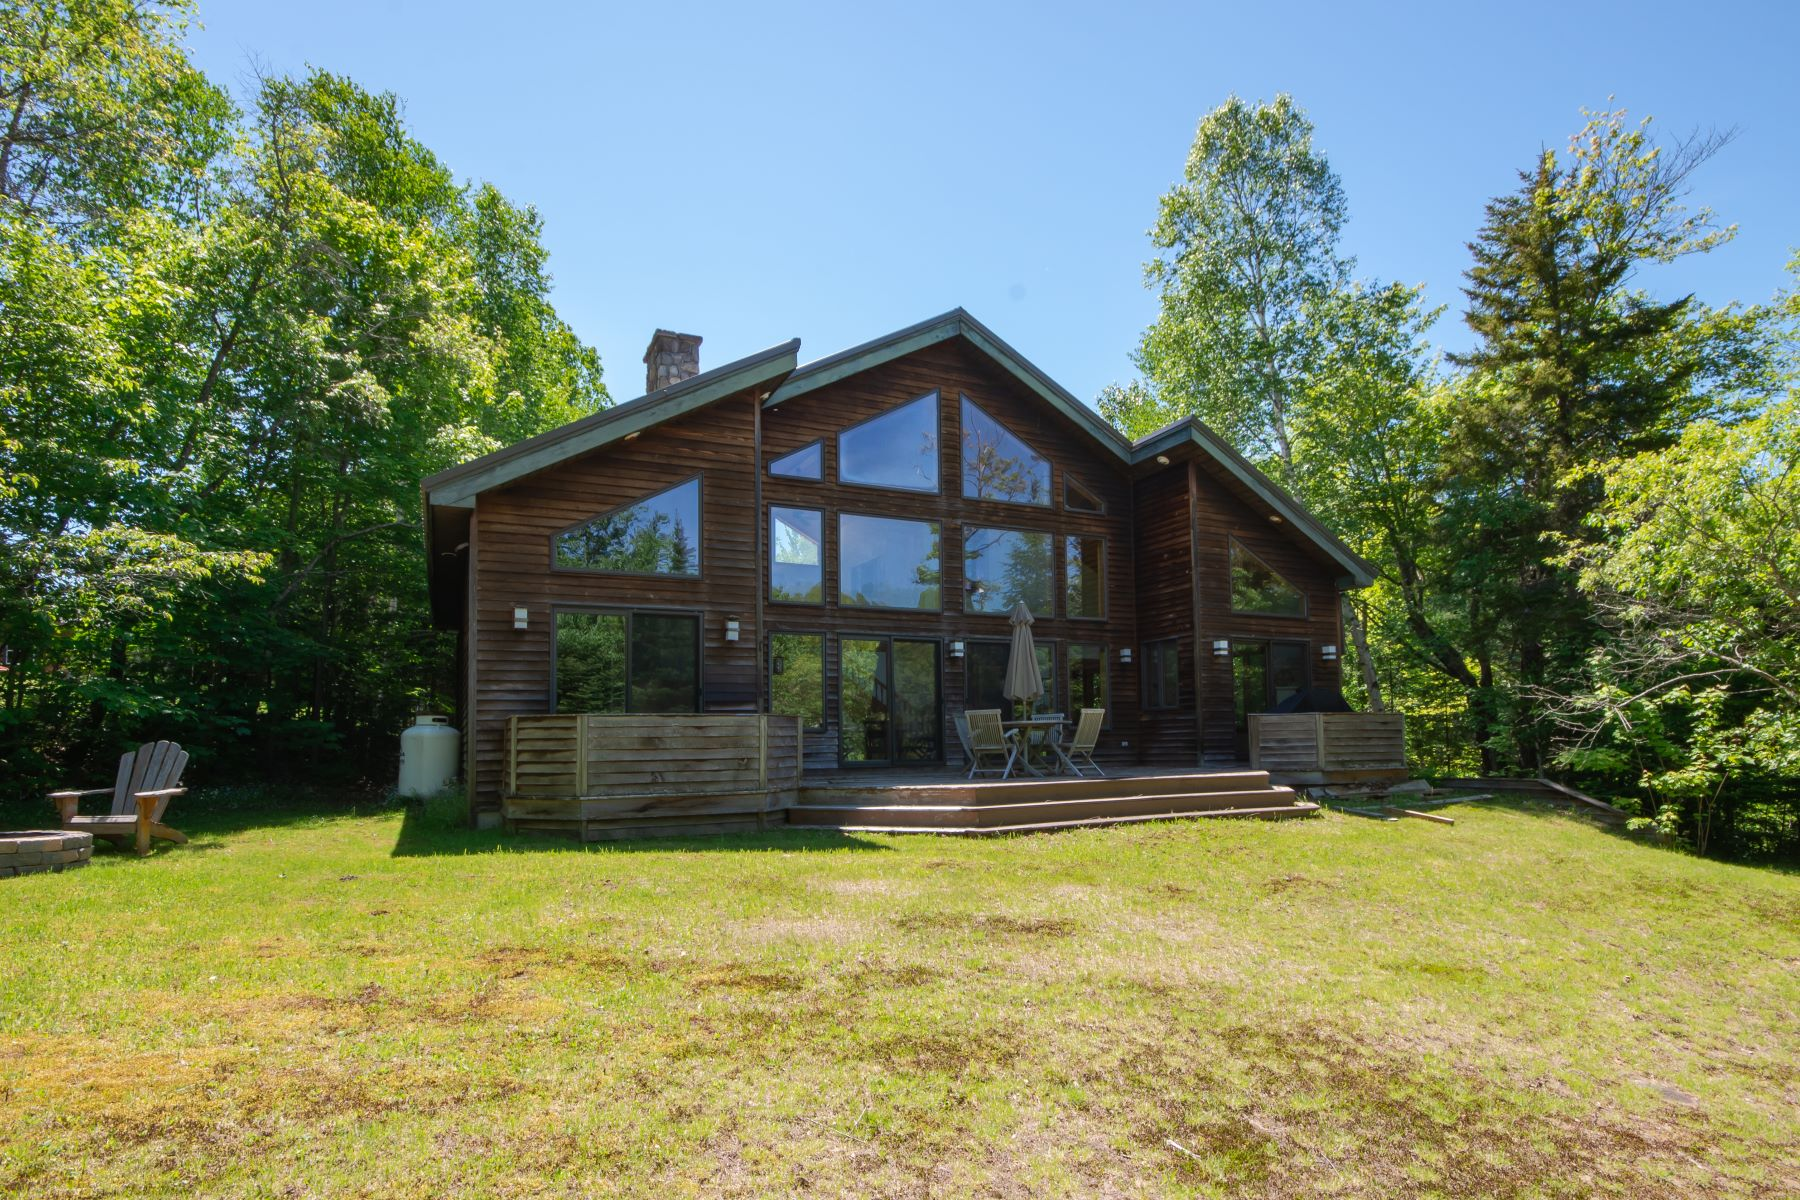 Single Family Homes for Active at Chateaugay Lake Vacation Home 14 Balsam Way Chateaugay, New York 12920 United States